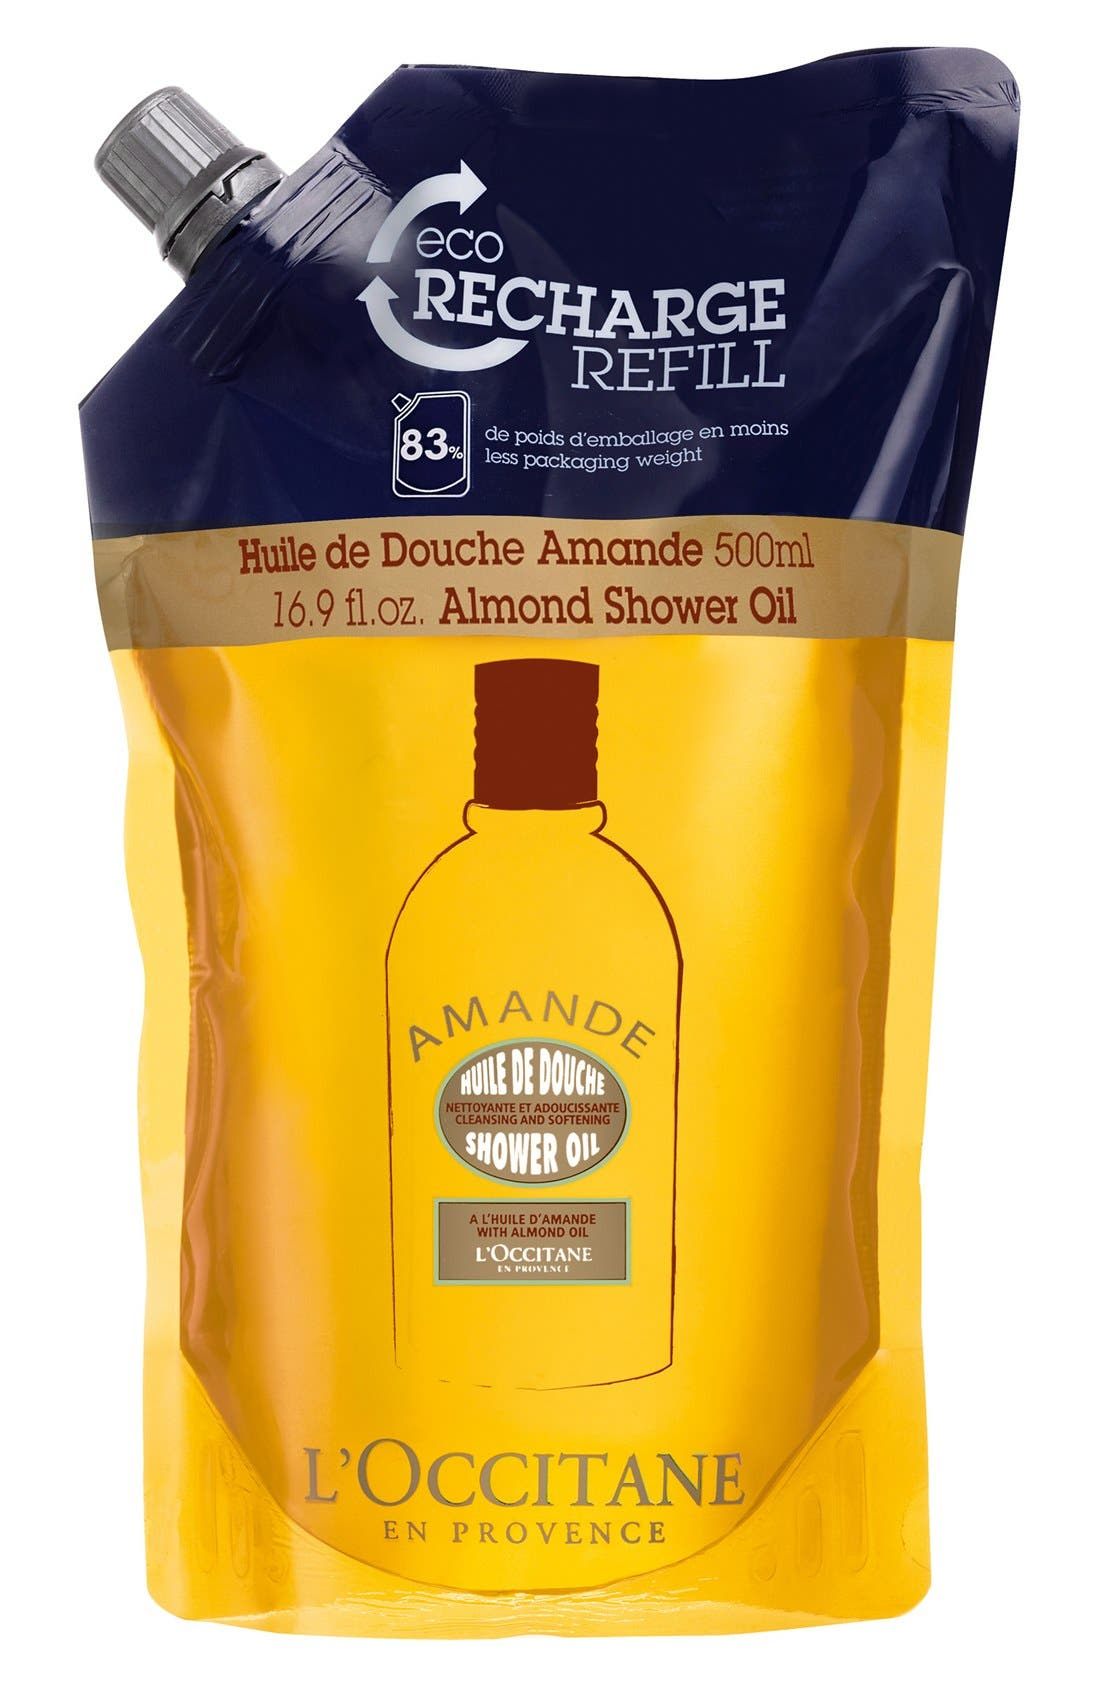 L'Occitane 'Almond' Eco-Refill Shower Oil